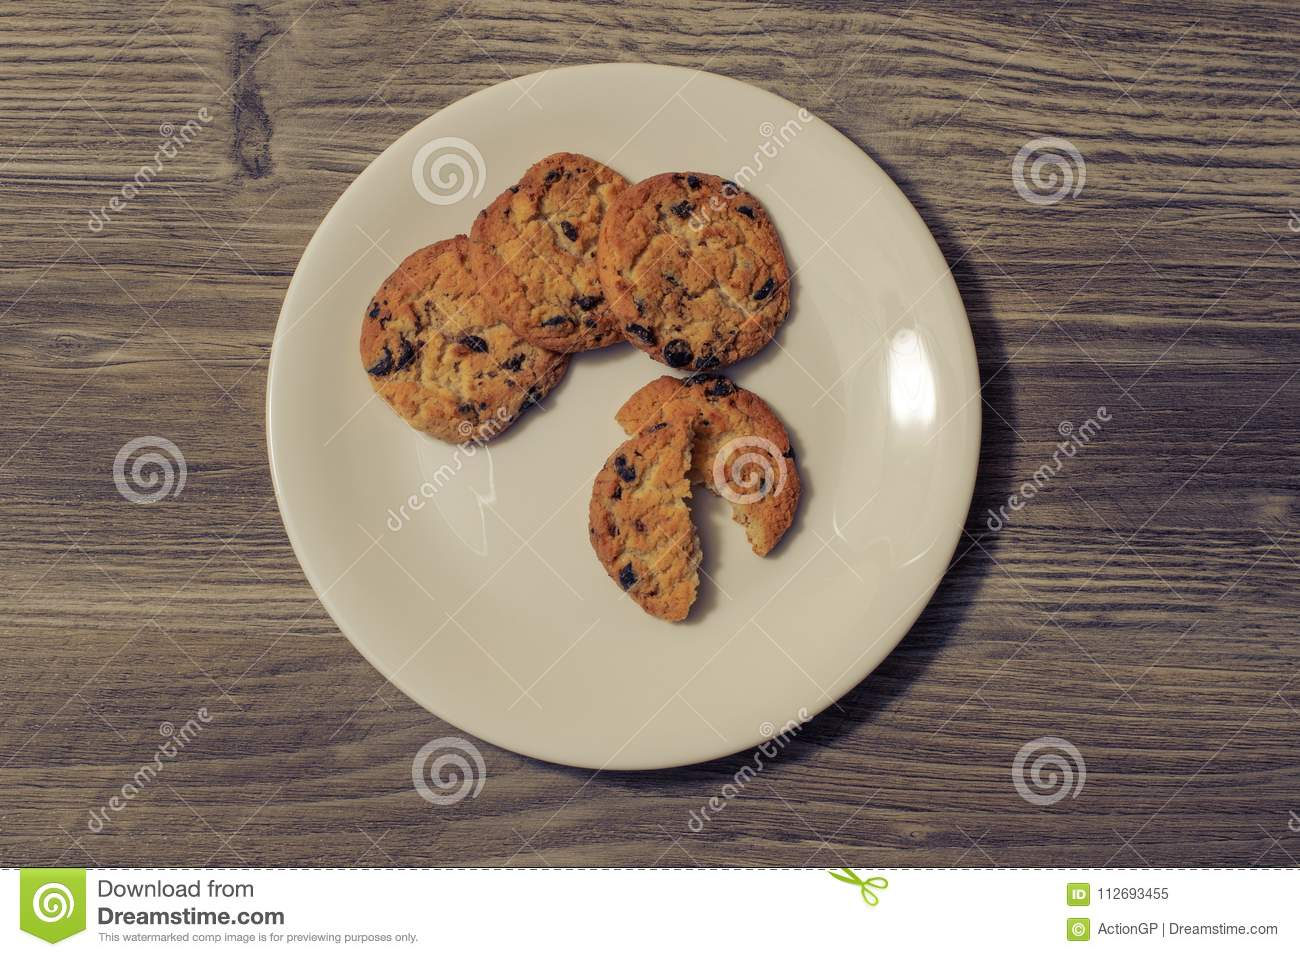 Cookies sweets candies cook bake bakery pastry homemade chocolate bite snack chil eating concept. Top above overhead close up view